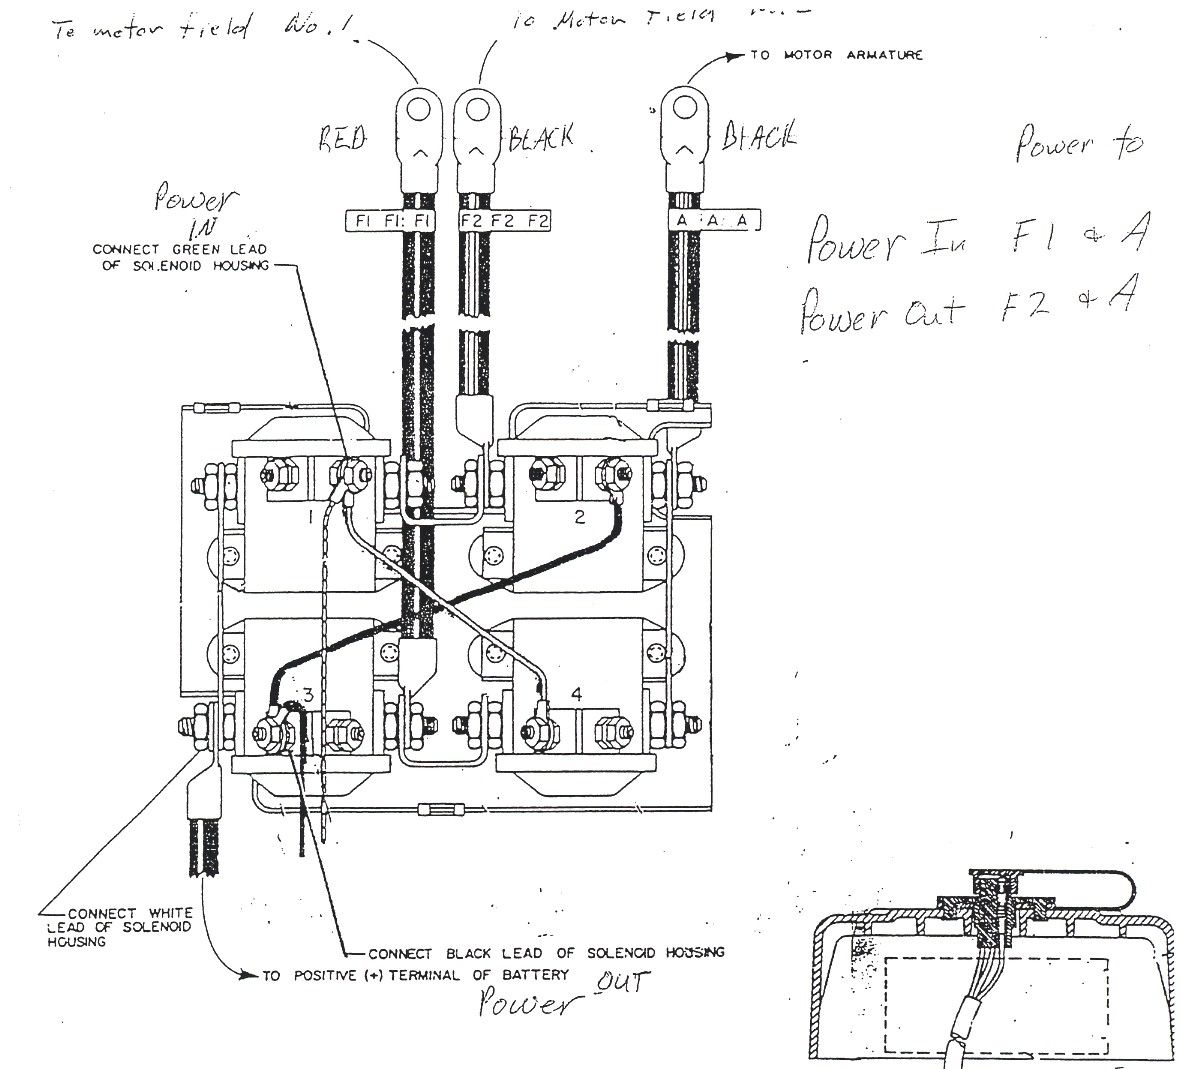 warn 1000 ac winch motor wiring diagram - schematics for 98 bmw 740il  engine for wiring diagram schematics  wiring diagram and schematics